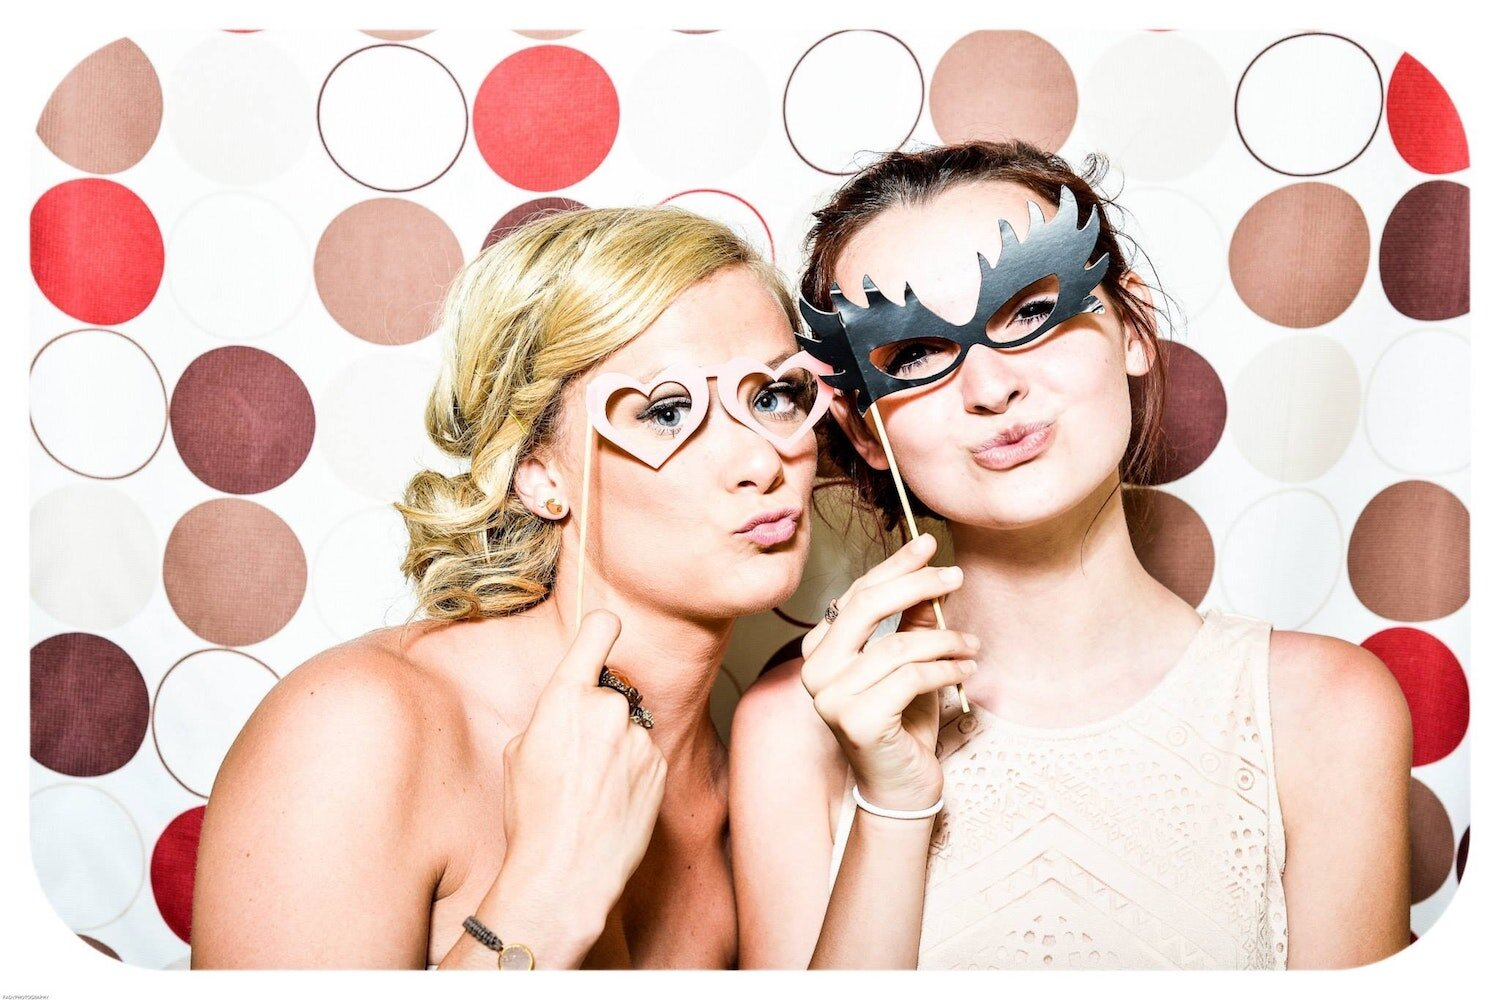 Photo Booth - Check out some of our photo booth compilations!